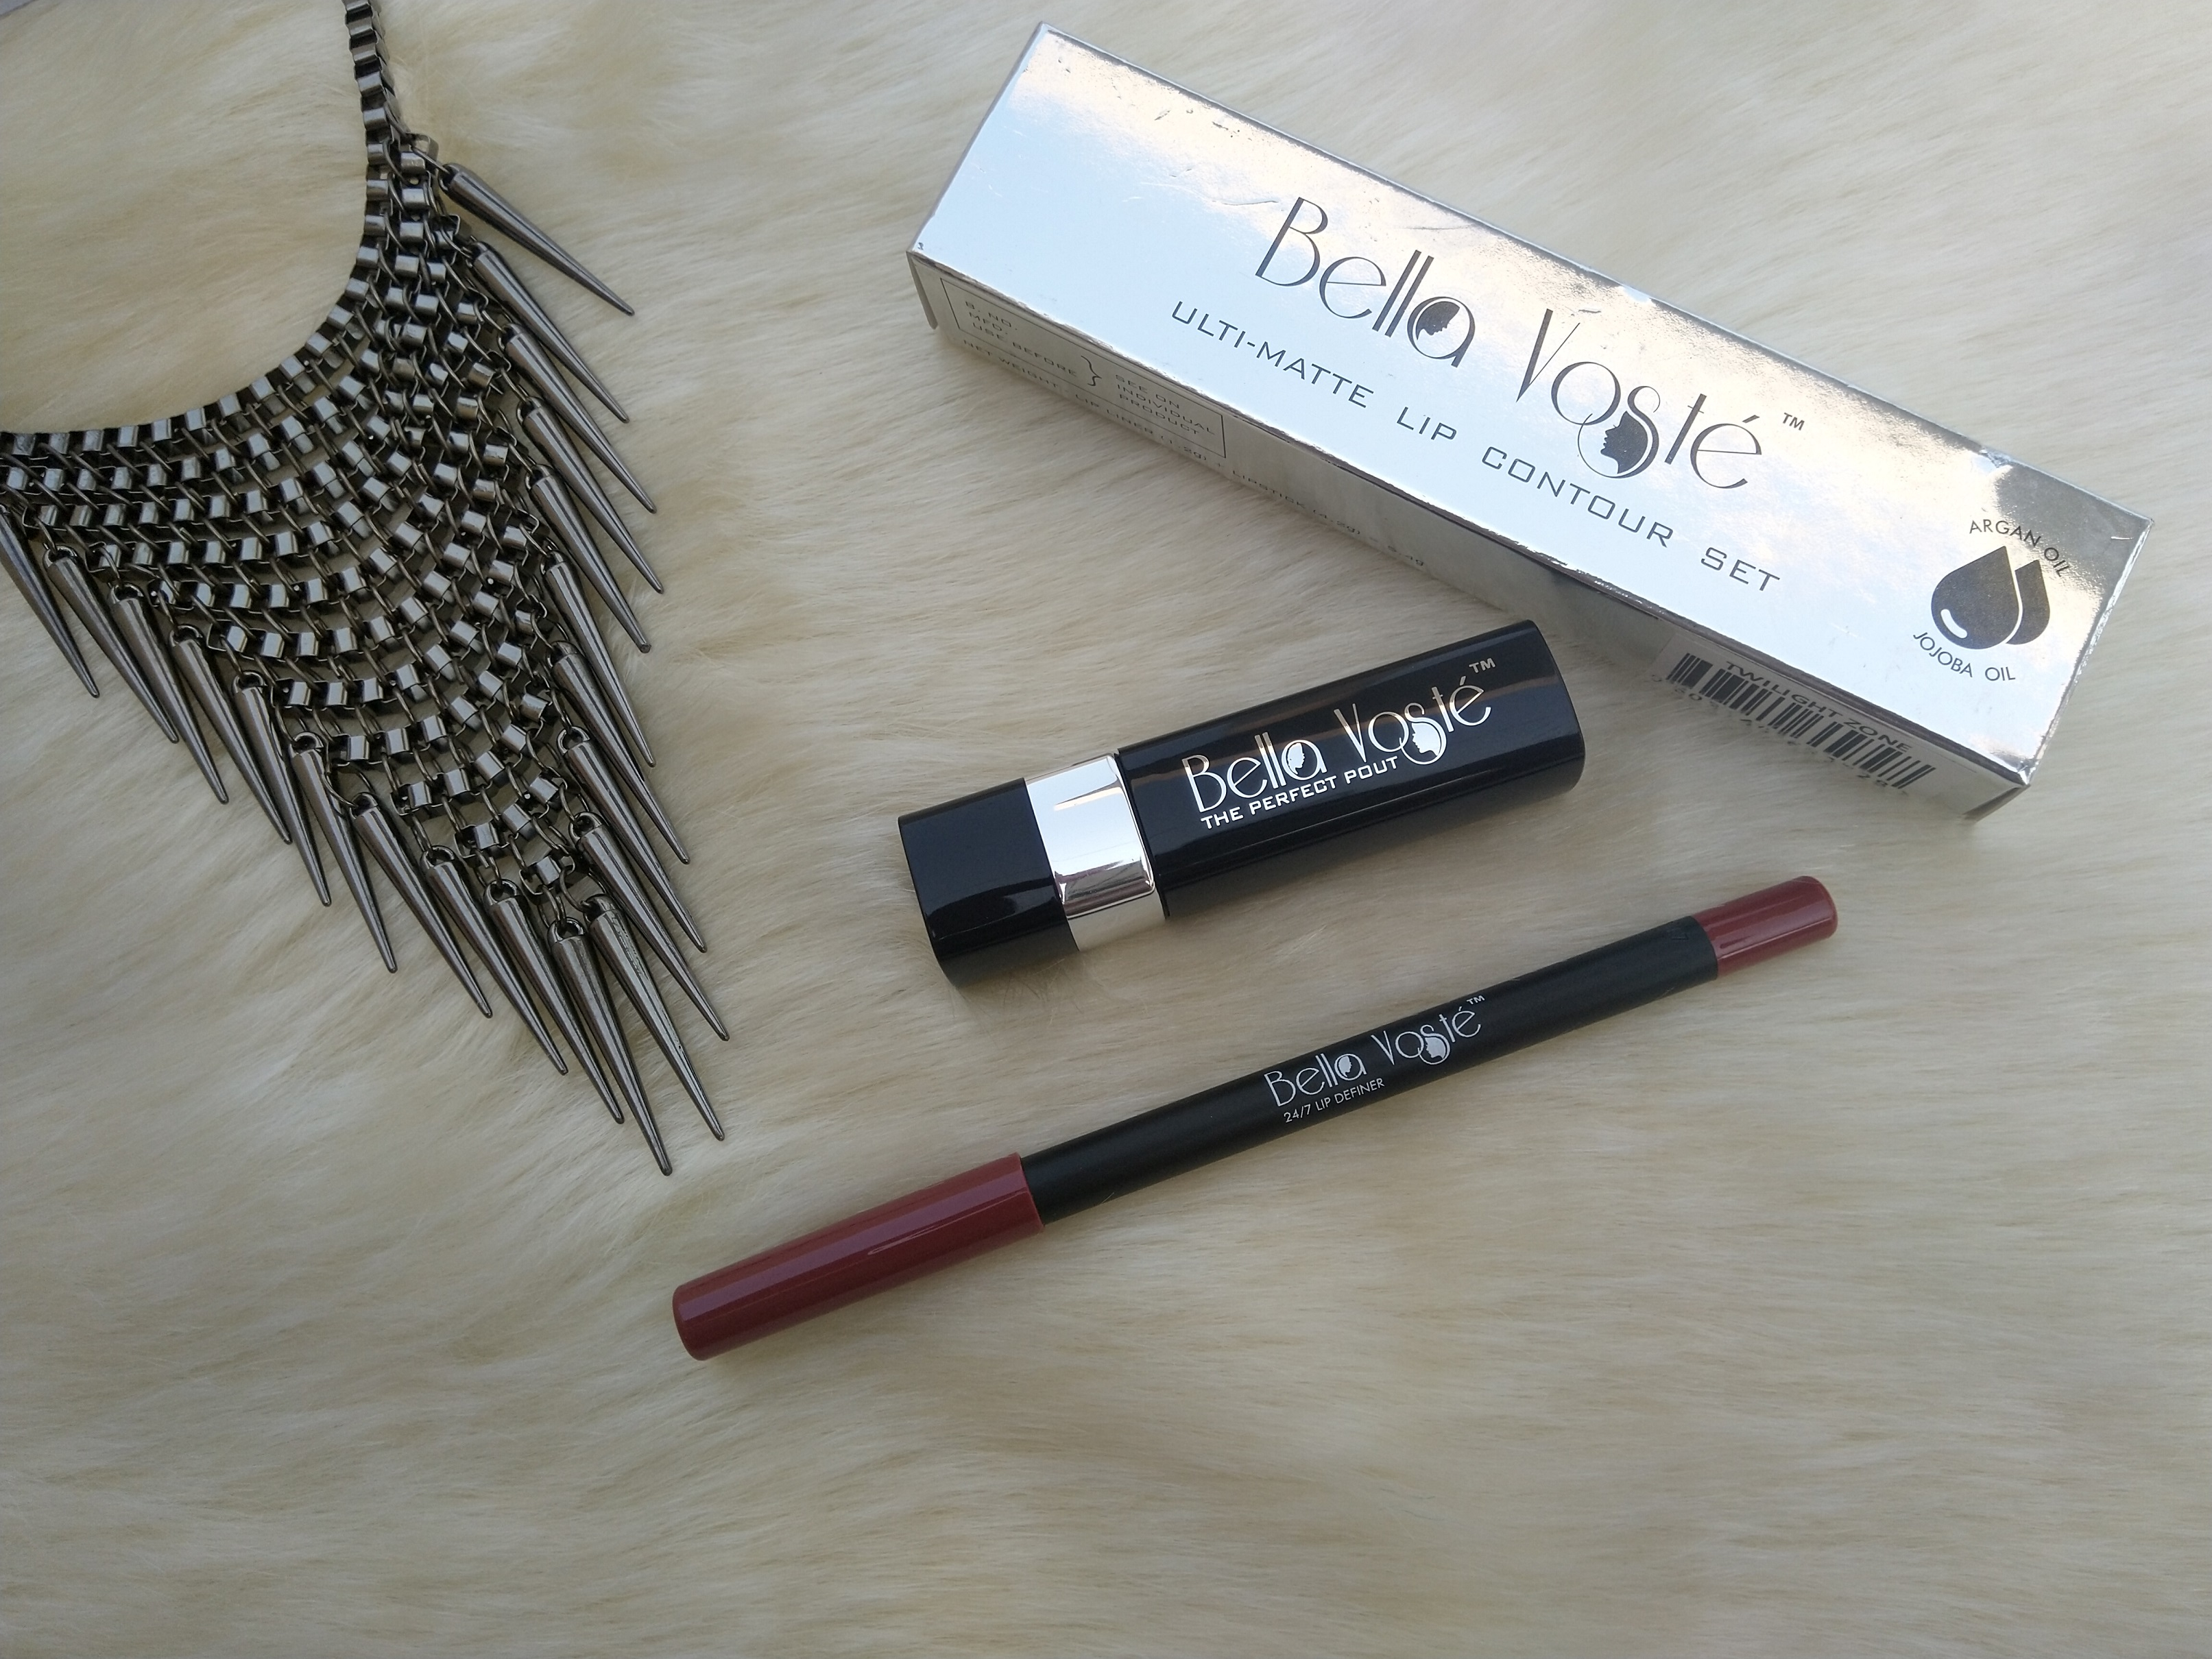 Bella Voste Lip Contour Kit| Twilight Zone Review & Swatches